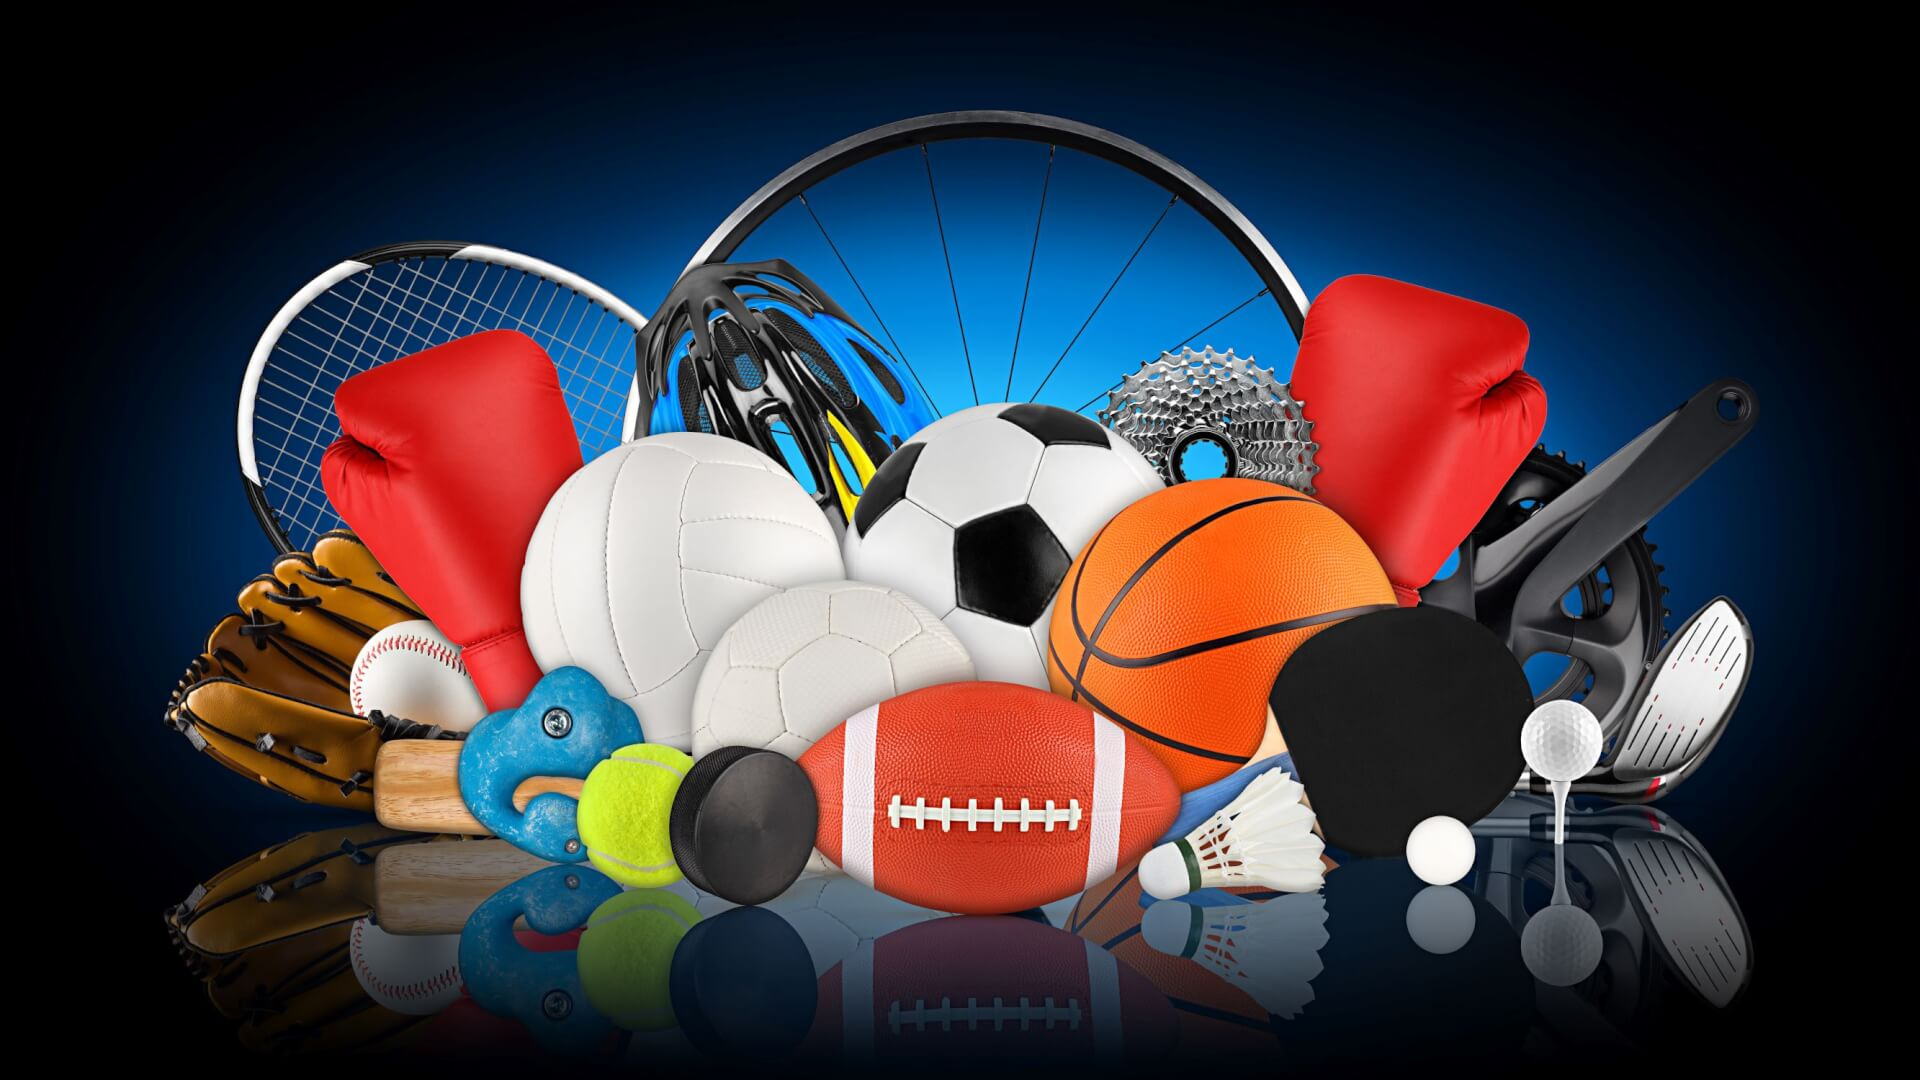 sporting goods collage 1 - Patterson Intellectual Property Law